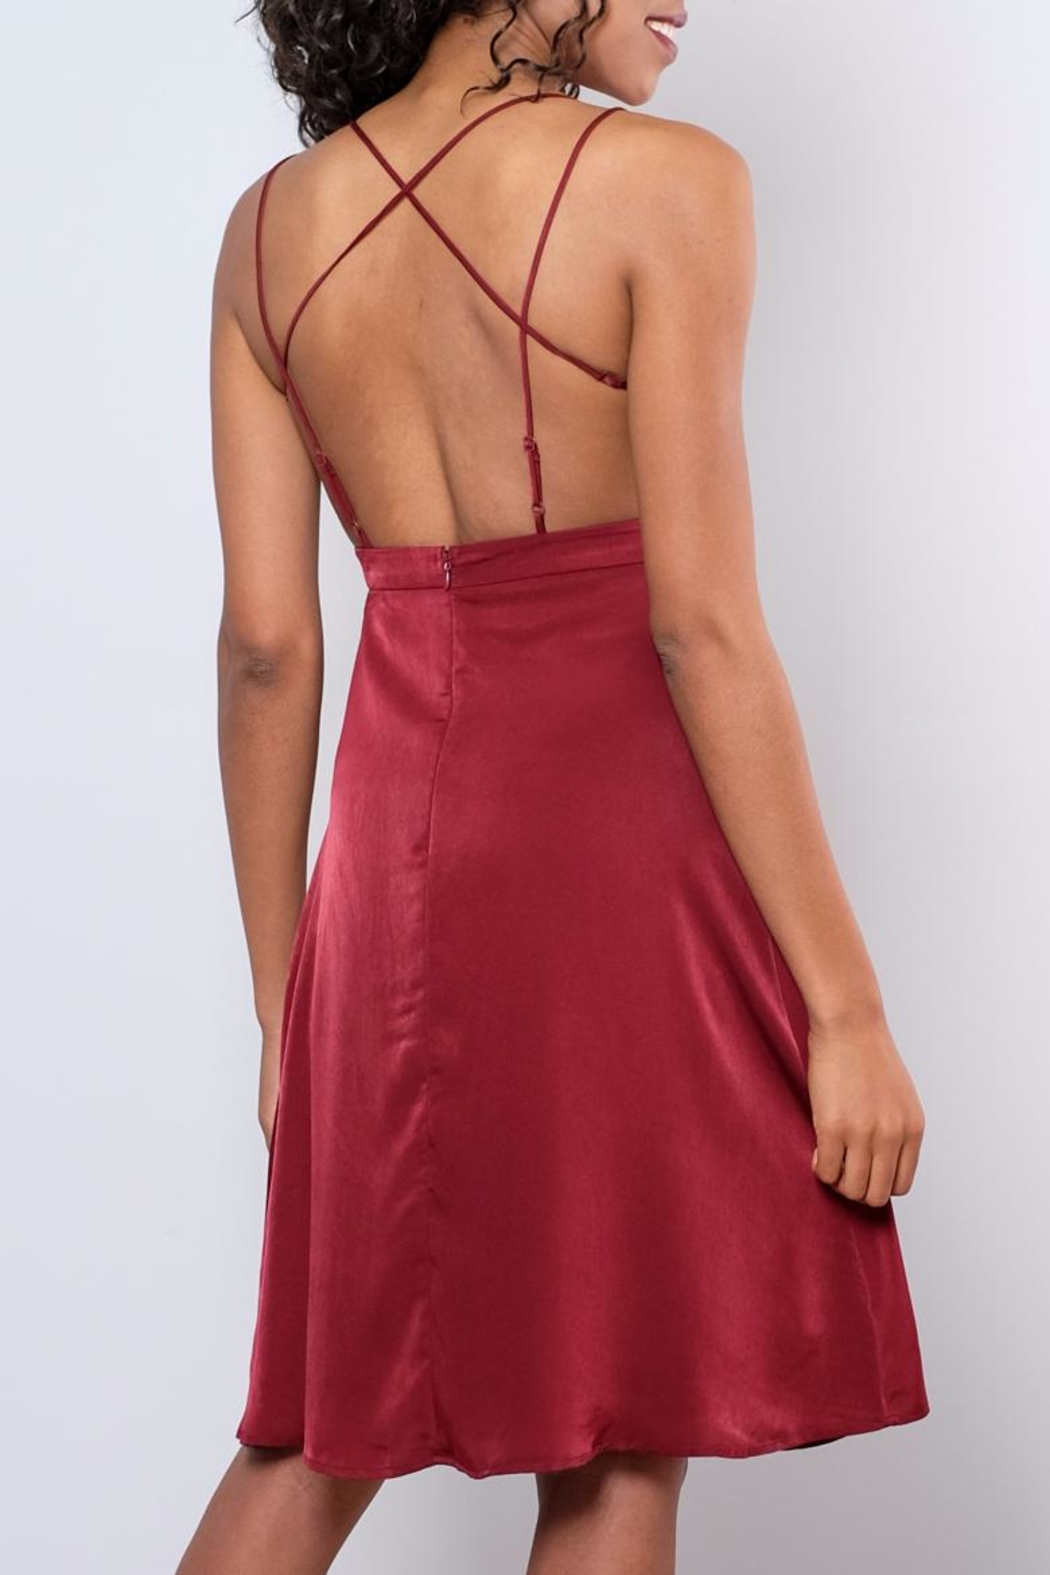 rokoko Diva Strappy Dress - Side Cropped Image